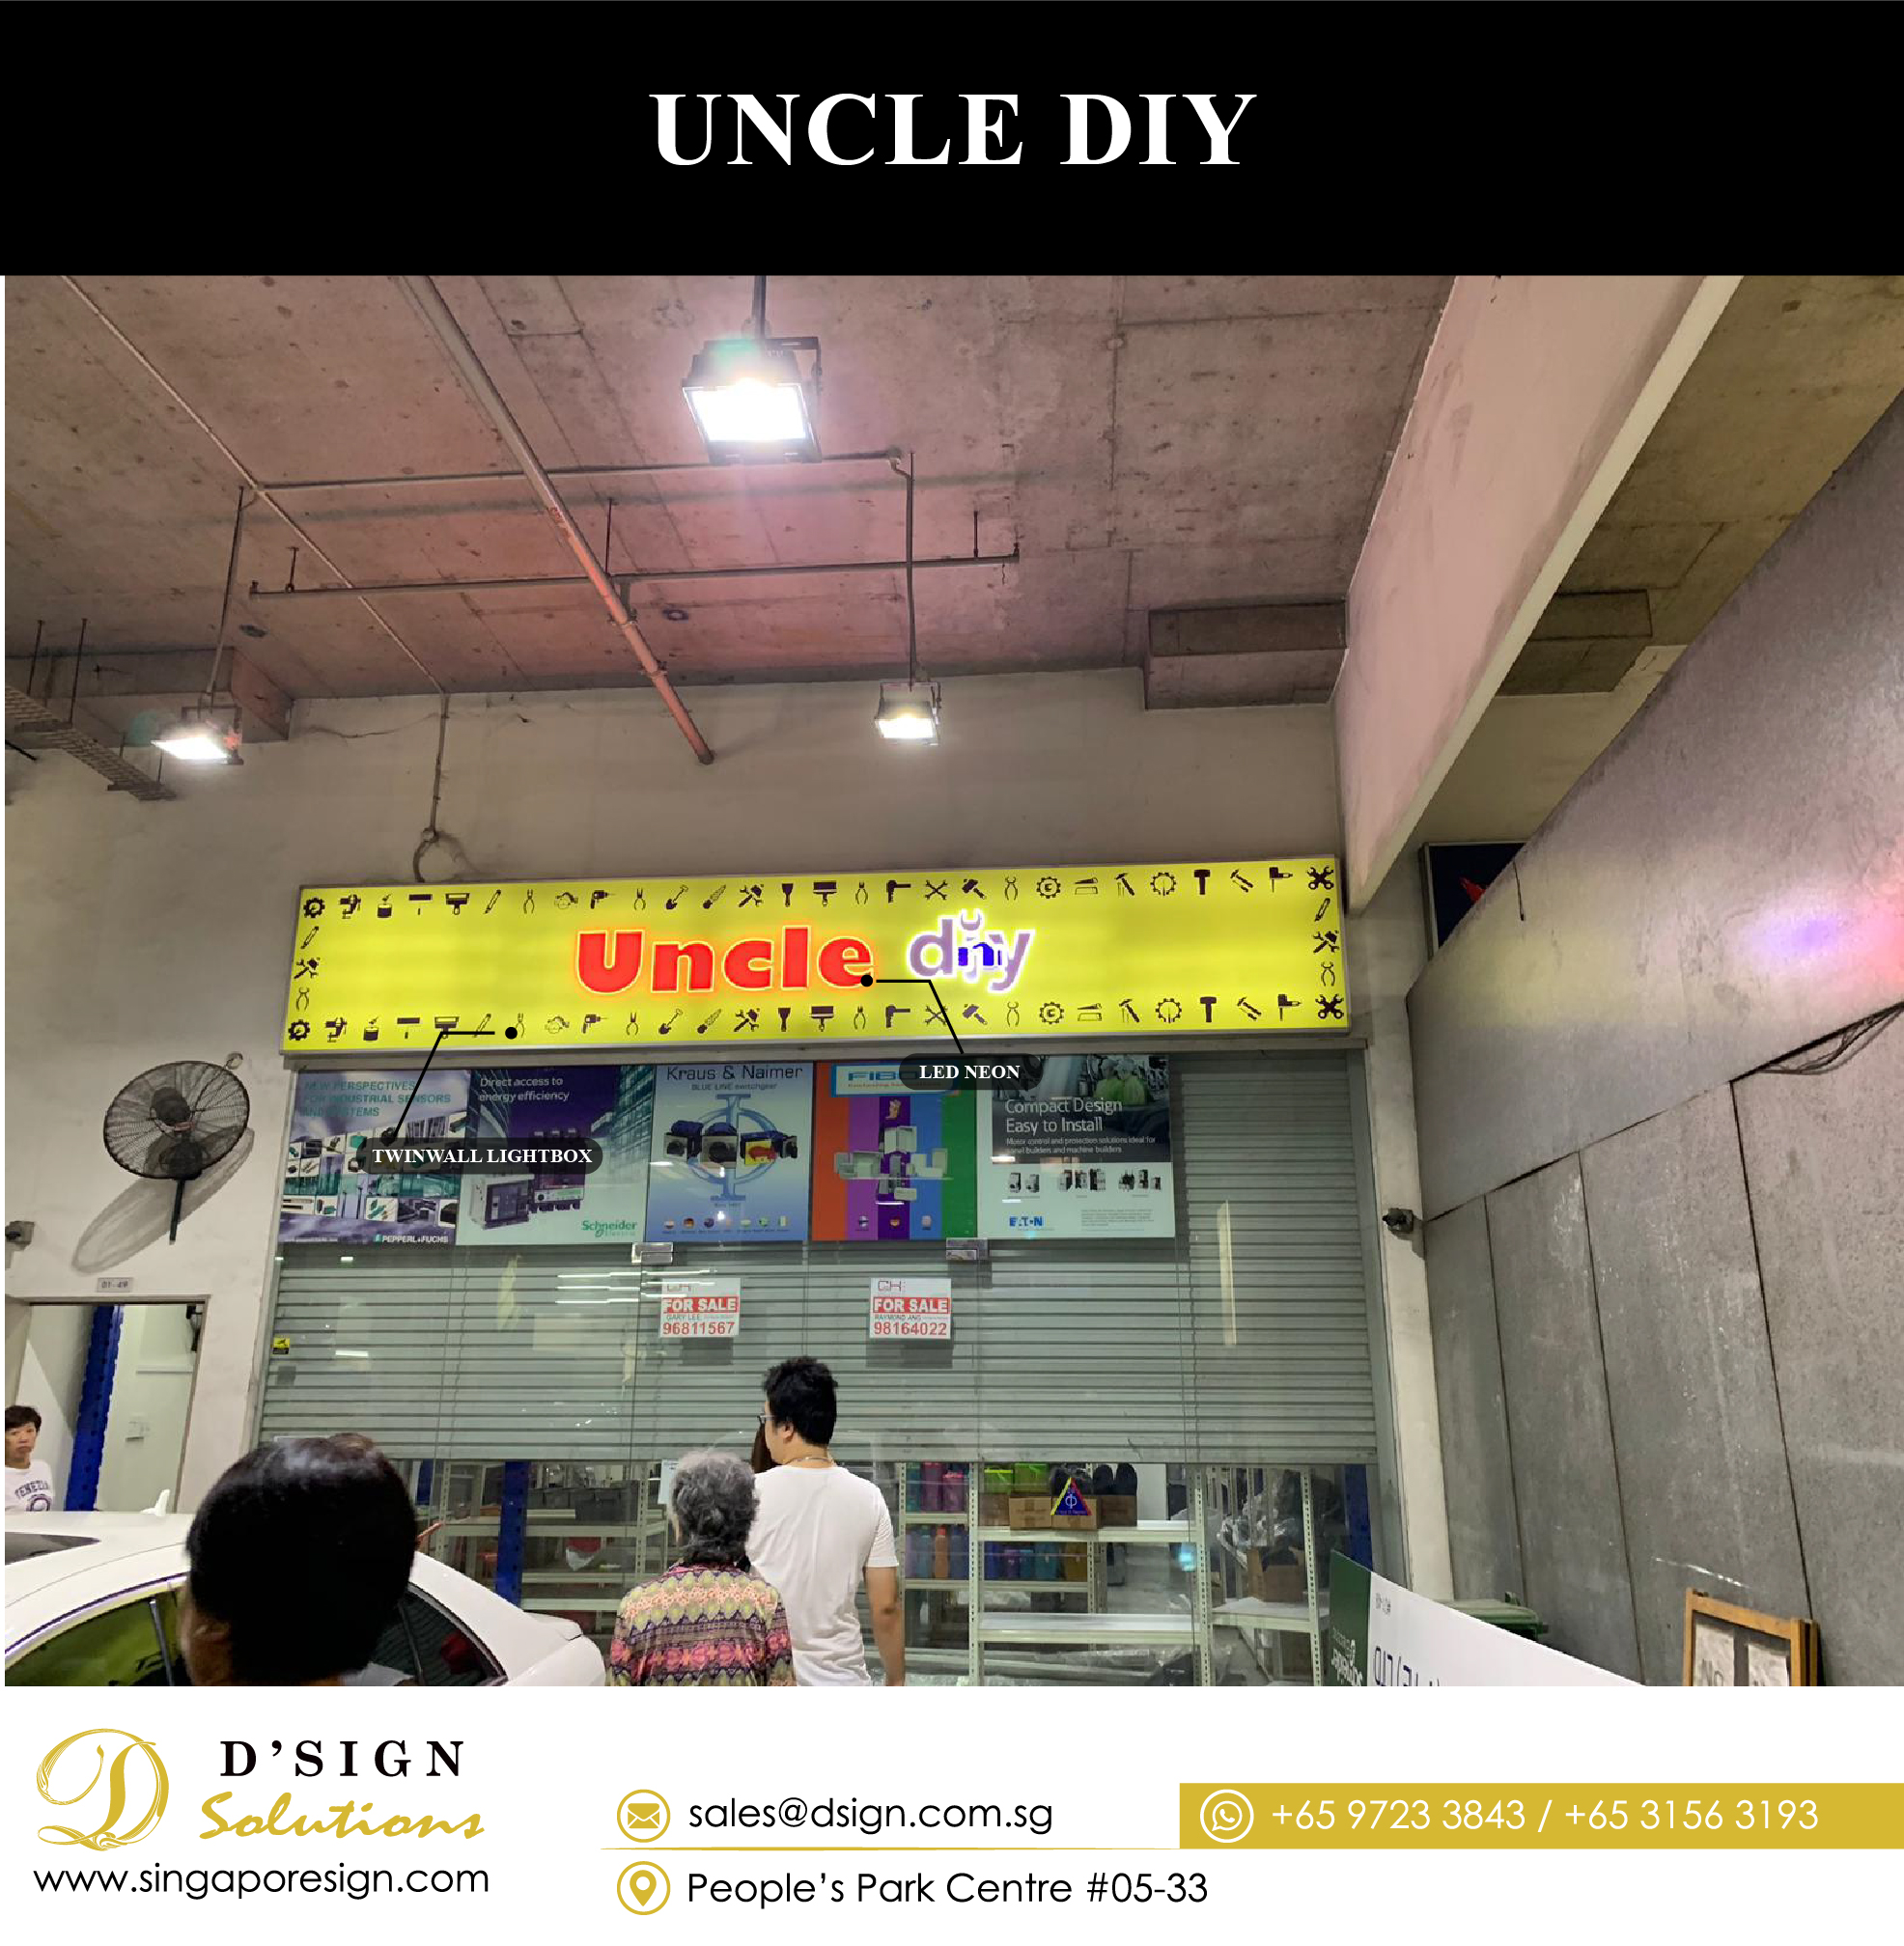 UNCLE DIY